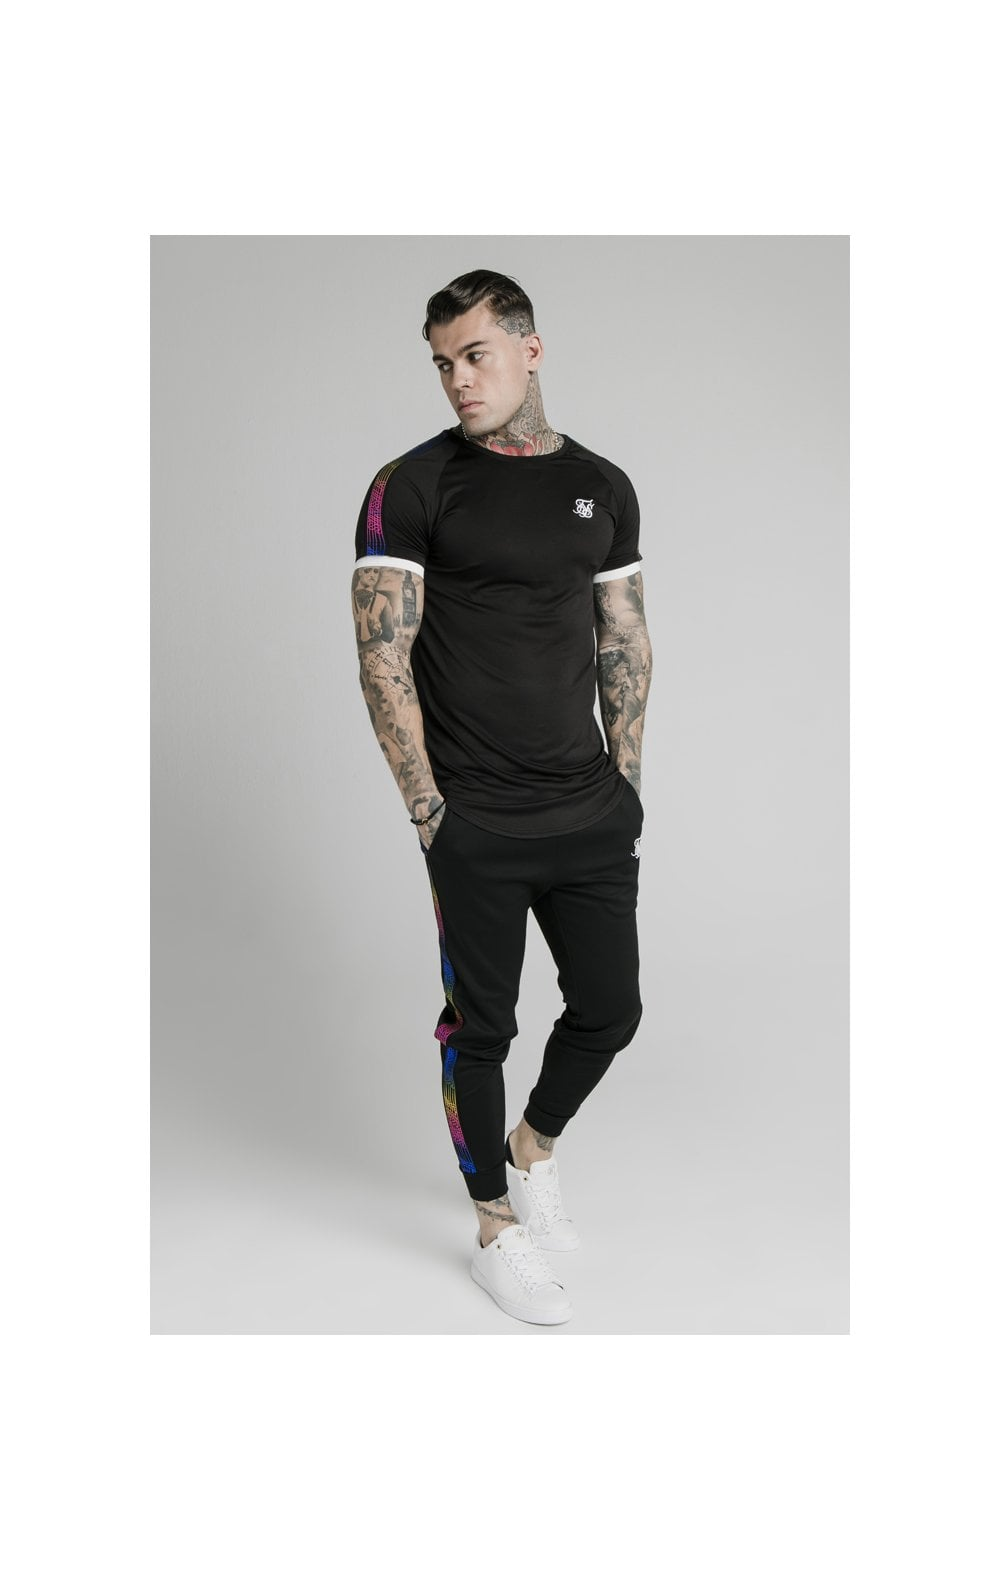 Load image into Gallery viewer, SikSilk S/S Fade Runner Tech Tee - Black (2)